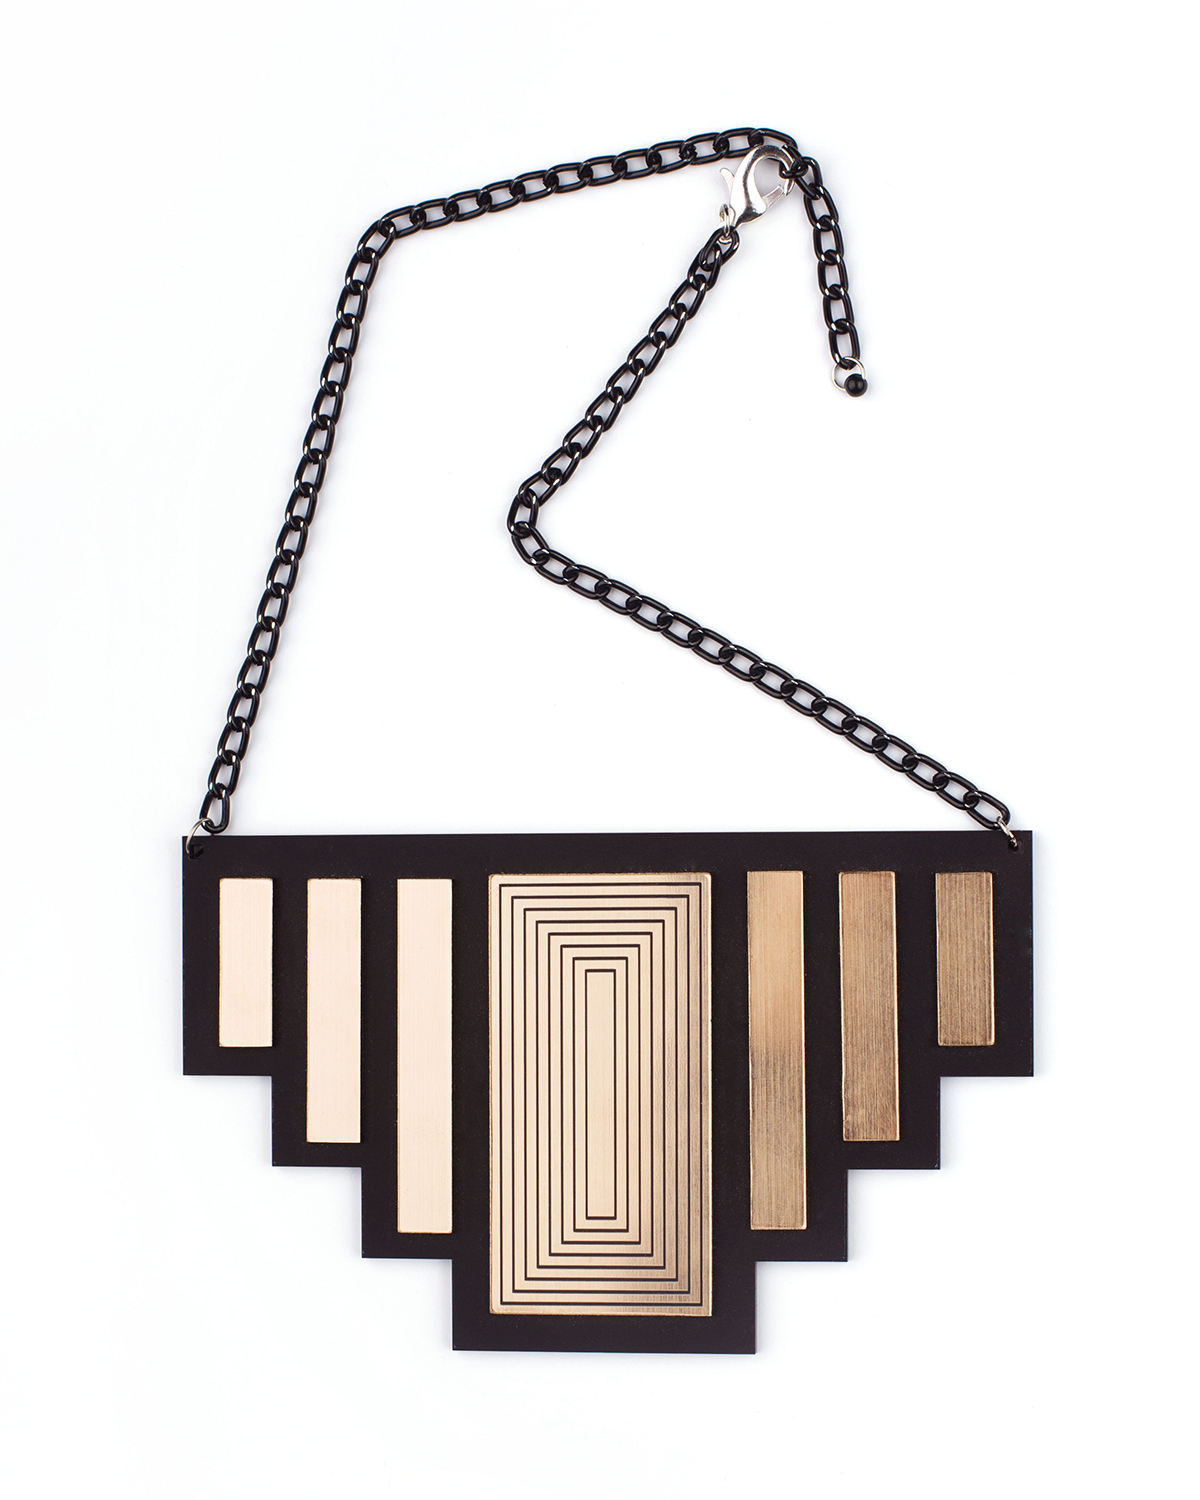 Newyork necklace | Lasercut jewelry |Rename | Made in Belgrade